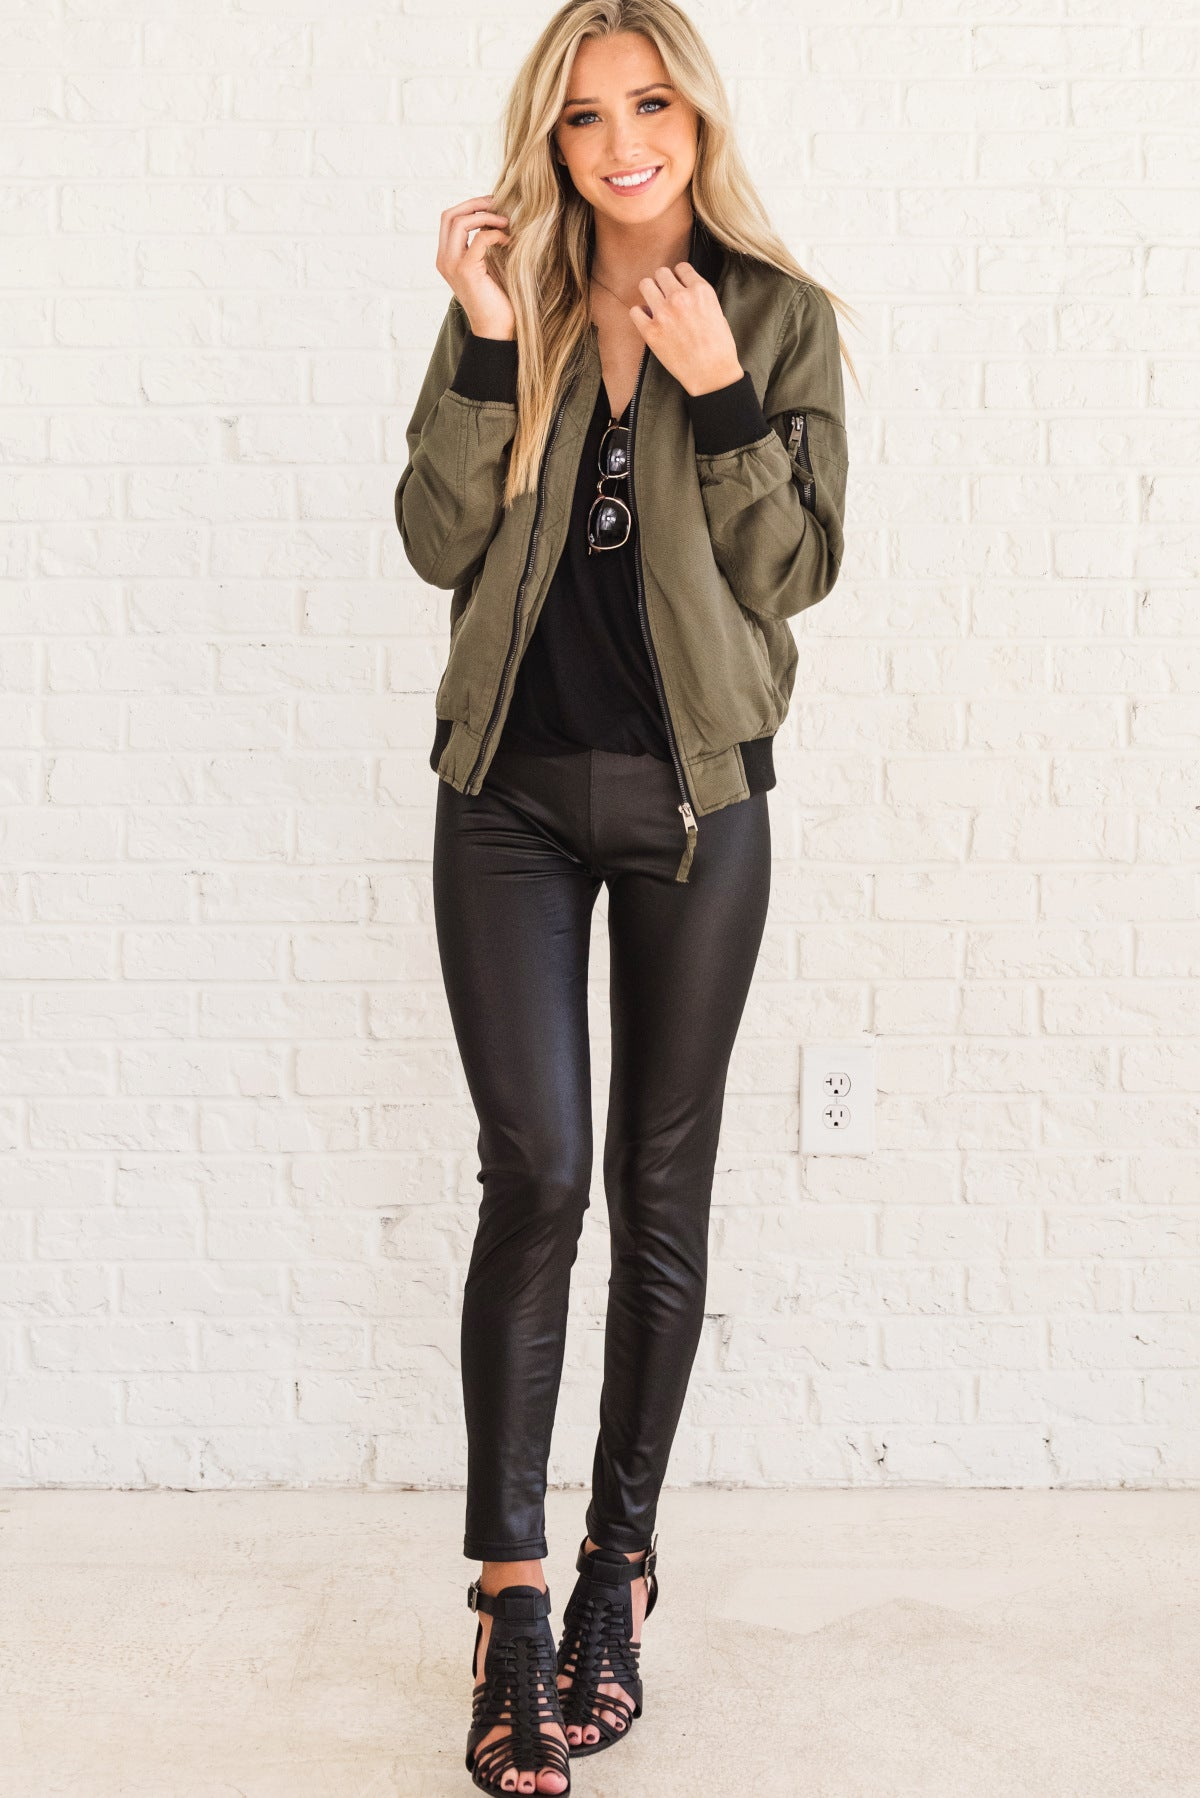 c0f633274 Weekend Vibes Olive Green and Black Bomber Jacket | Boutique